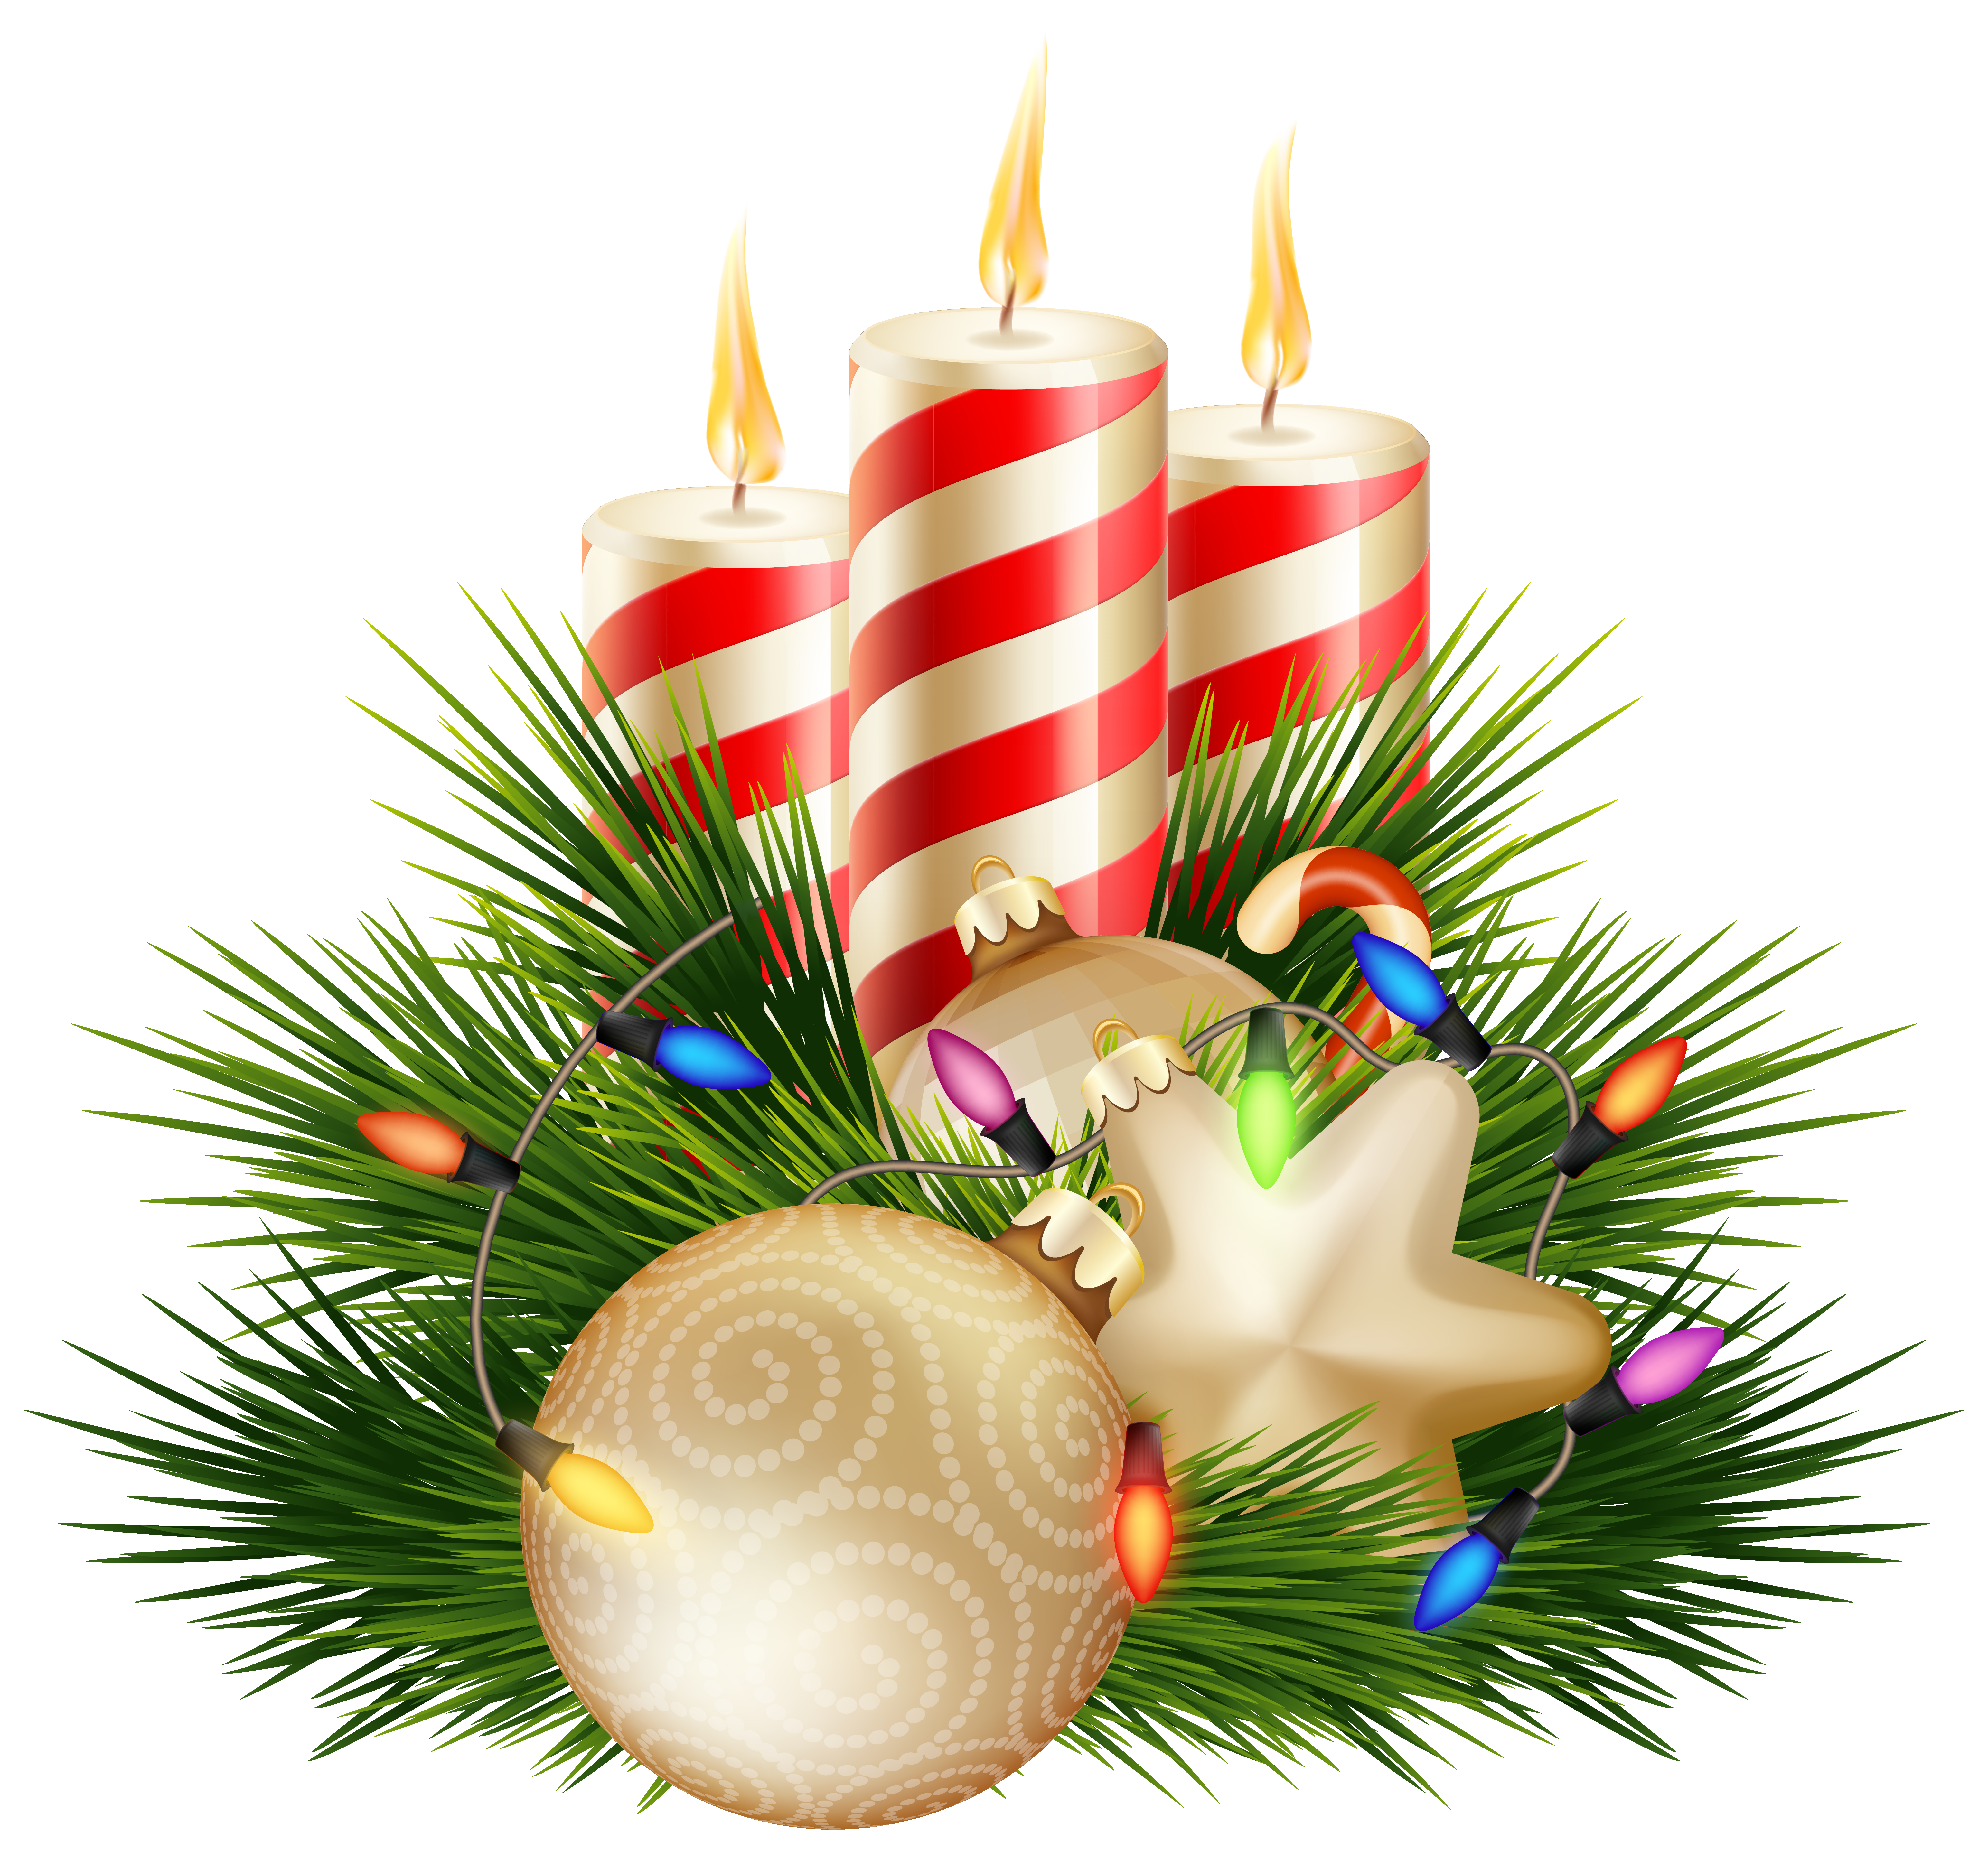 vector royalty free Christmas png clipart image. Transparent candle decorative